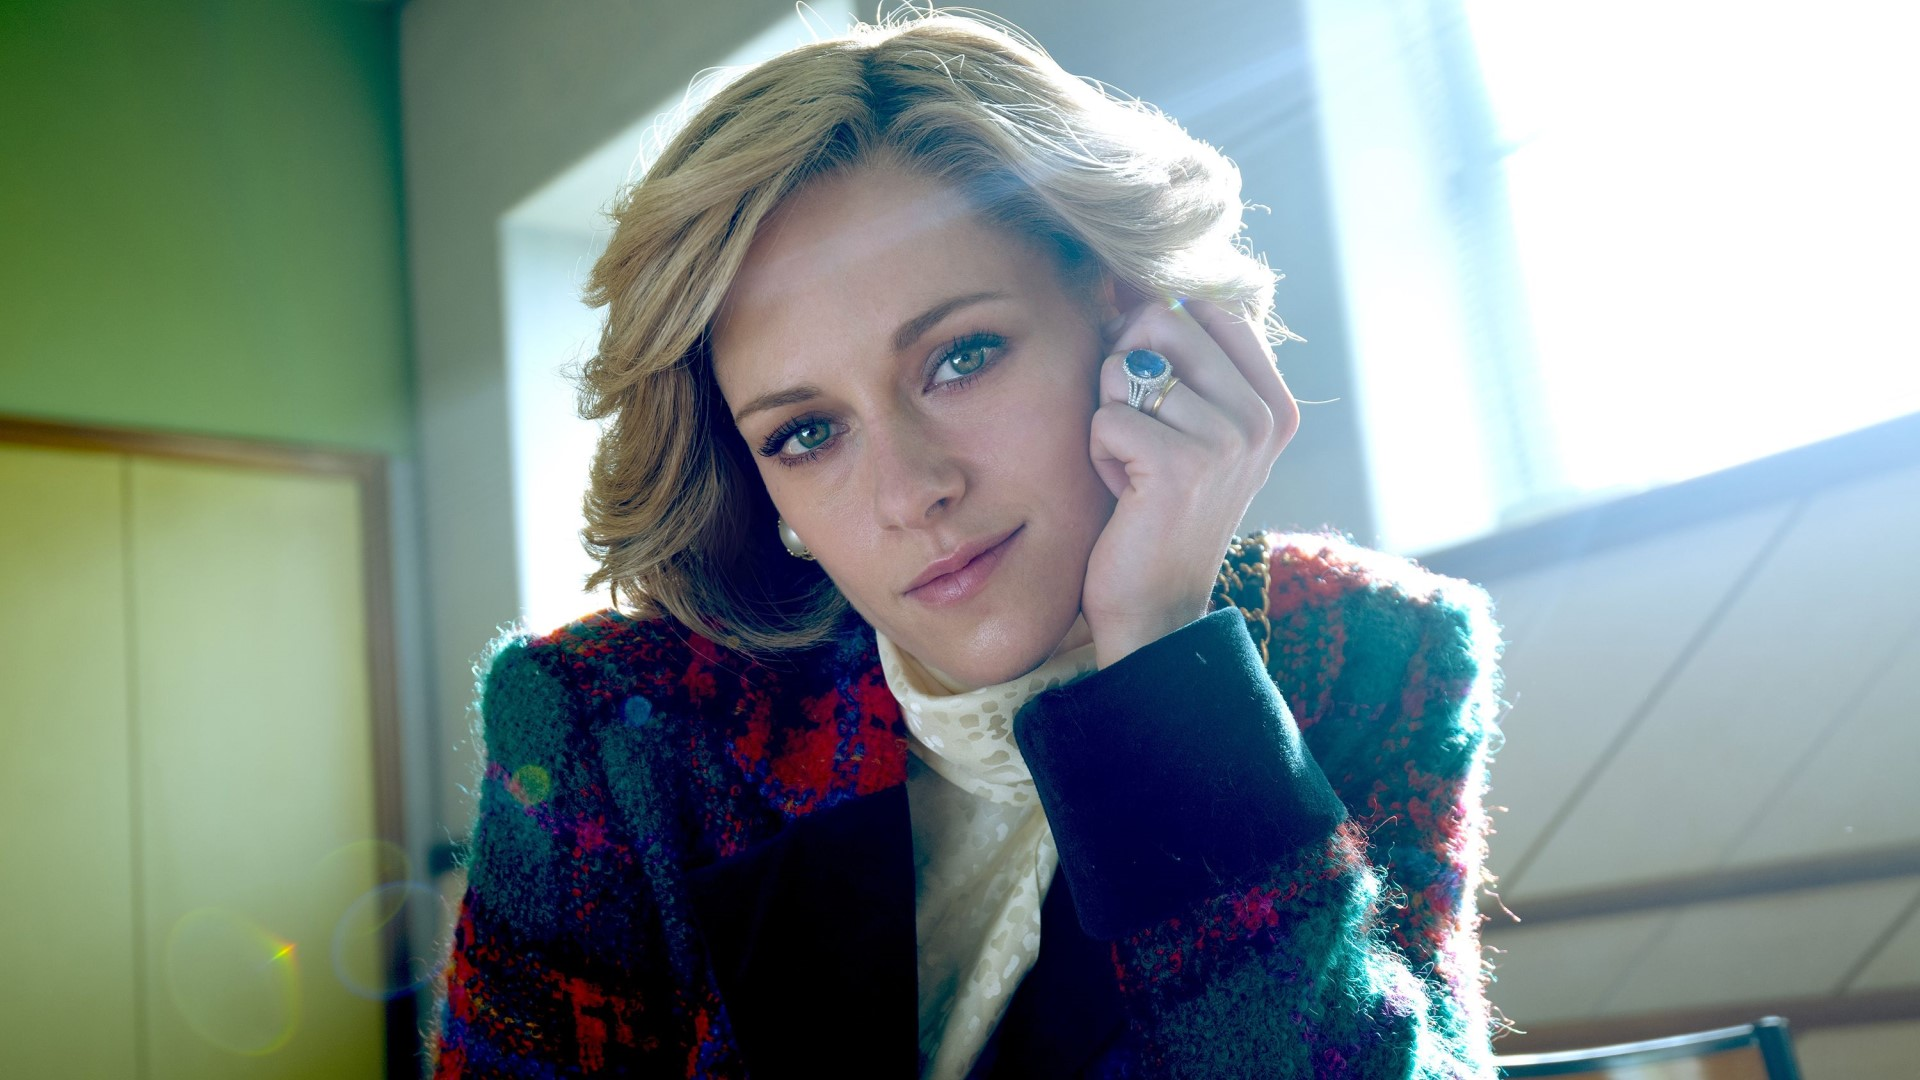 Kristen Stewart plays Diana Spencer: see how the 'Twilight' star evolved